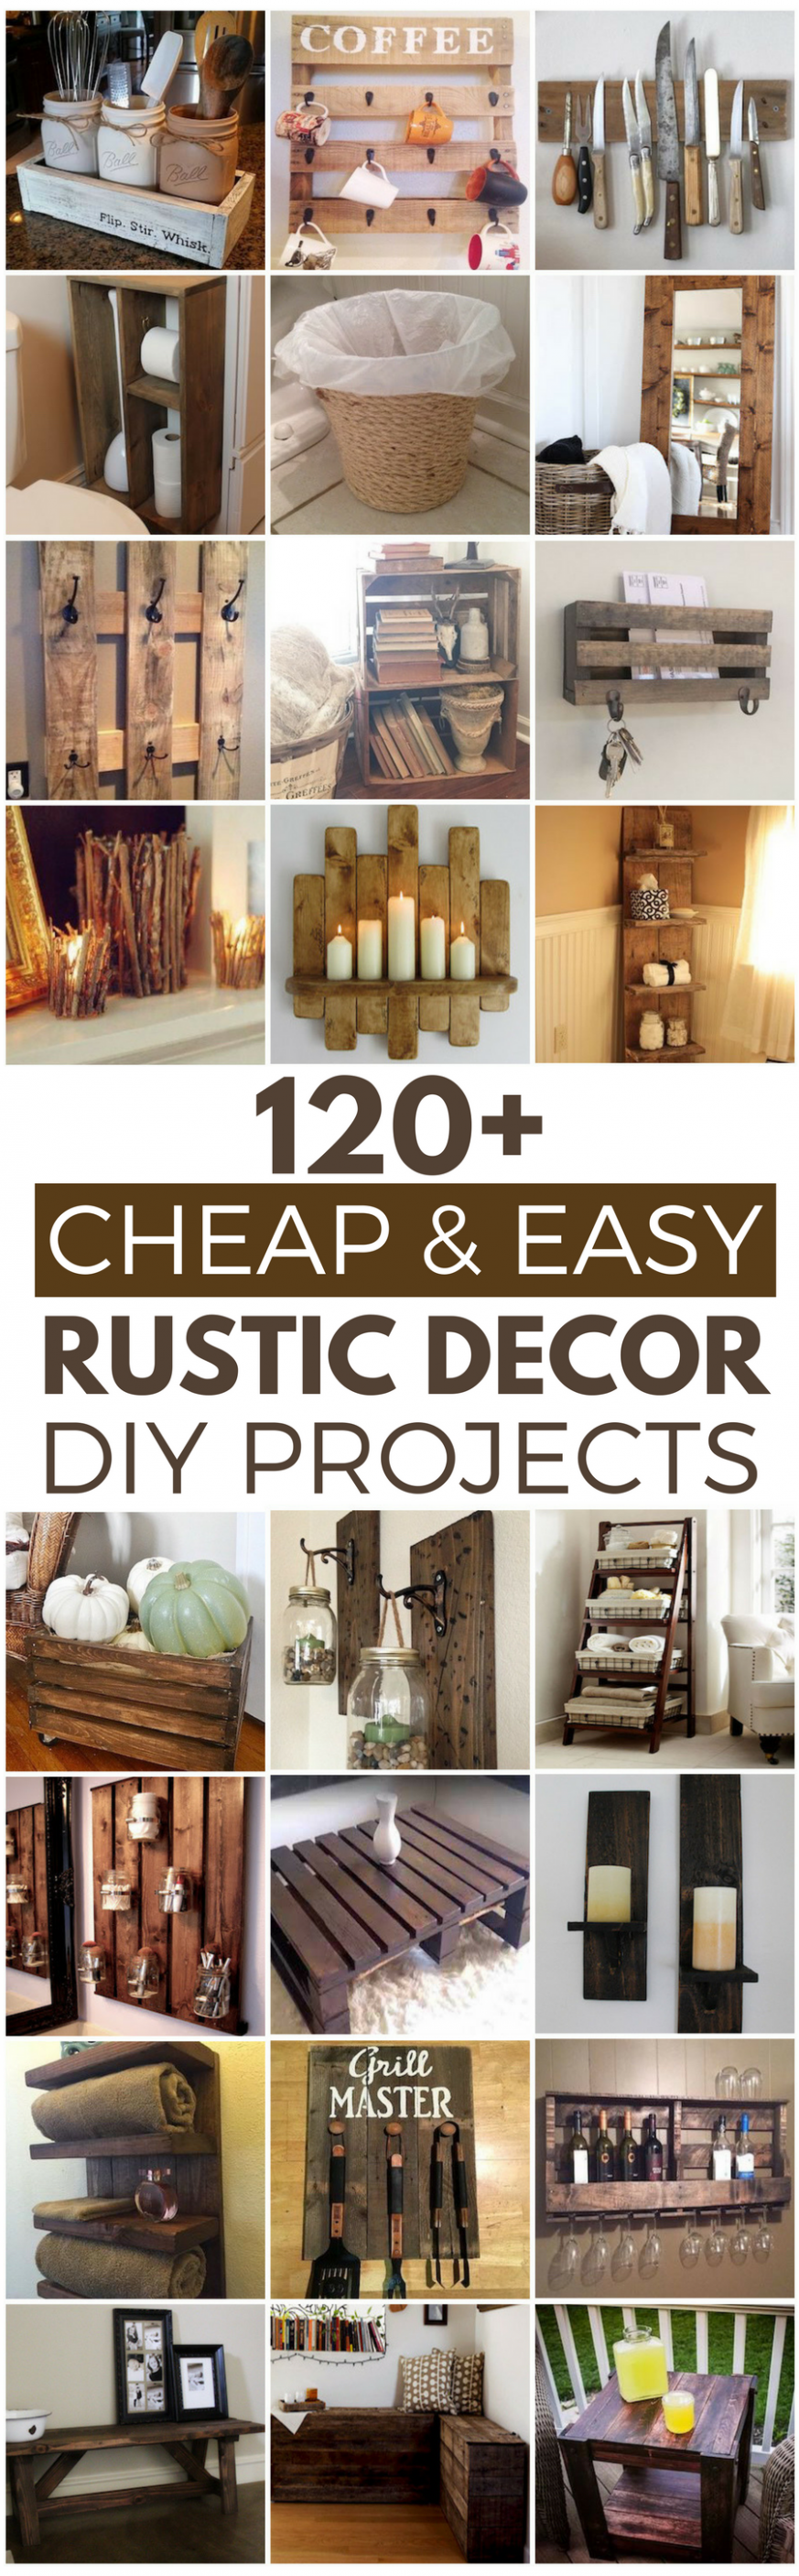 12 Cheap and Easy Rustic DIY Home Decor (With images) | Diy decor ...